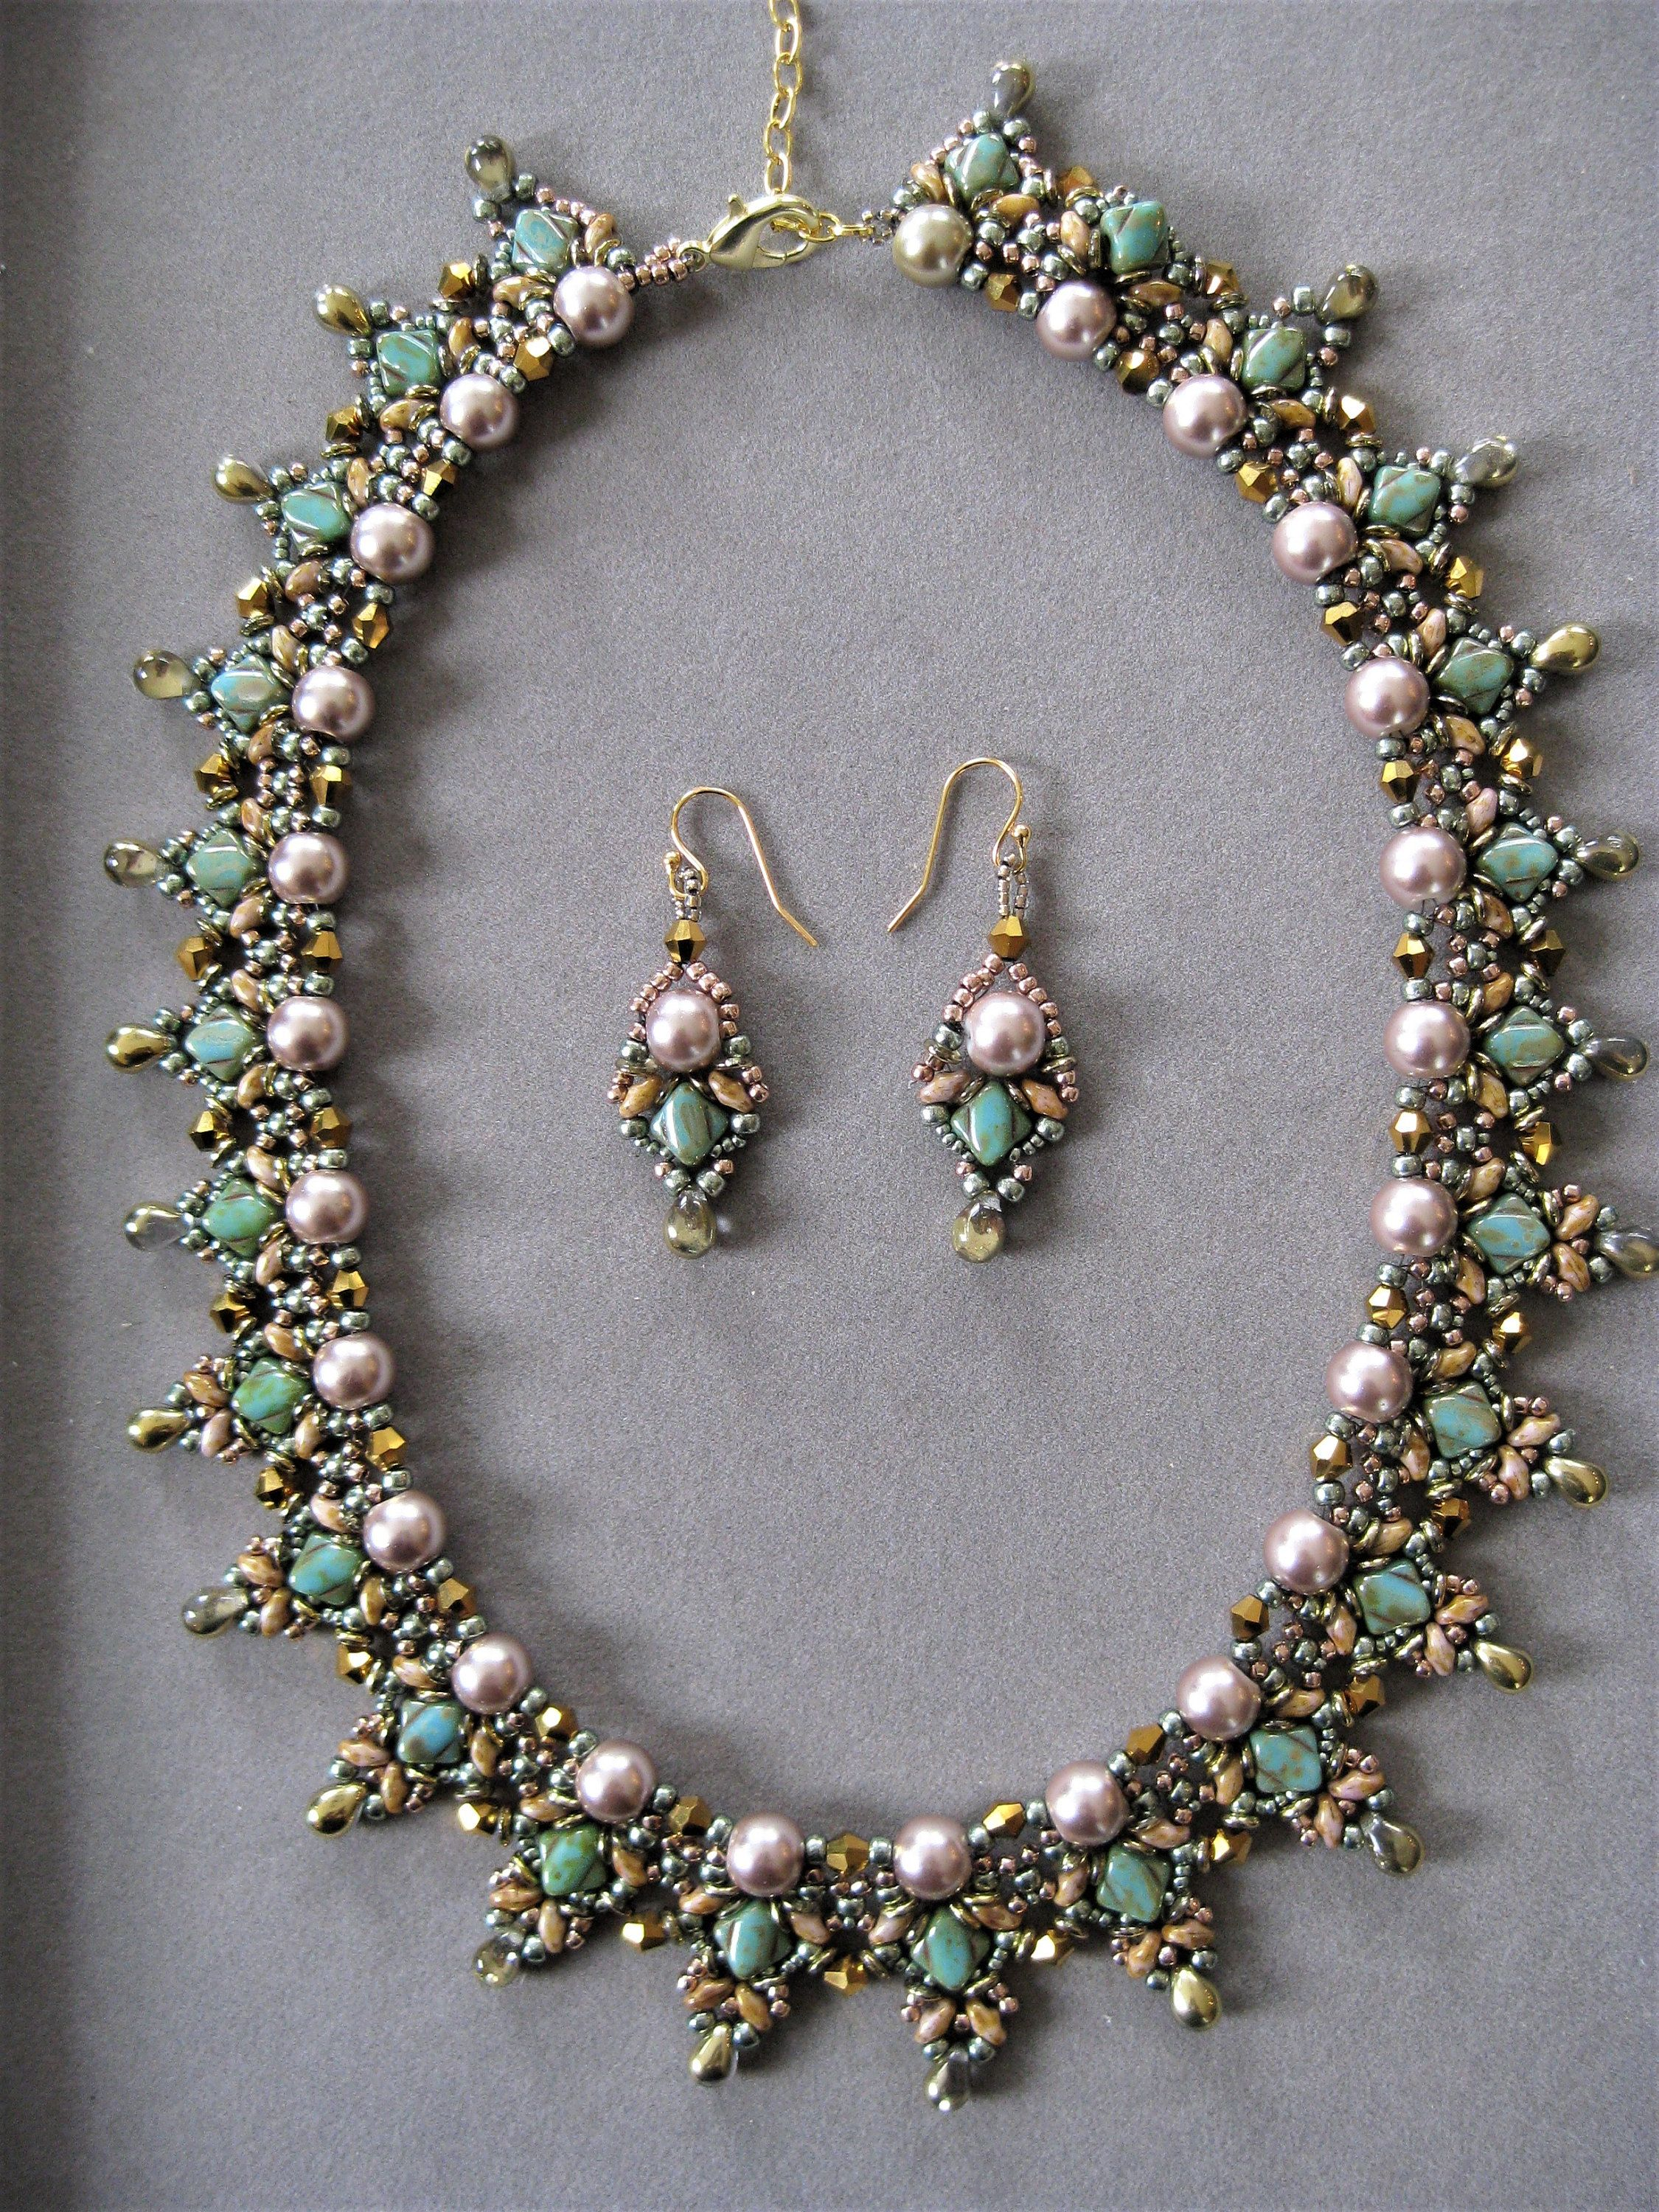 Turquoise Silky And Tan Superduo Handcrafted Seed Bead Necklace